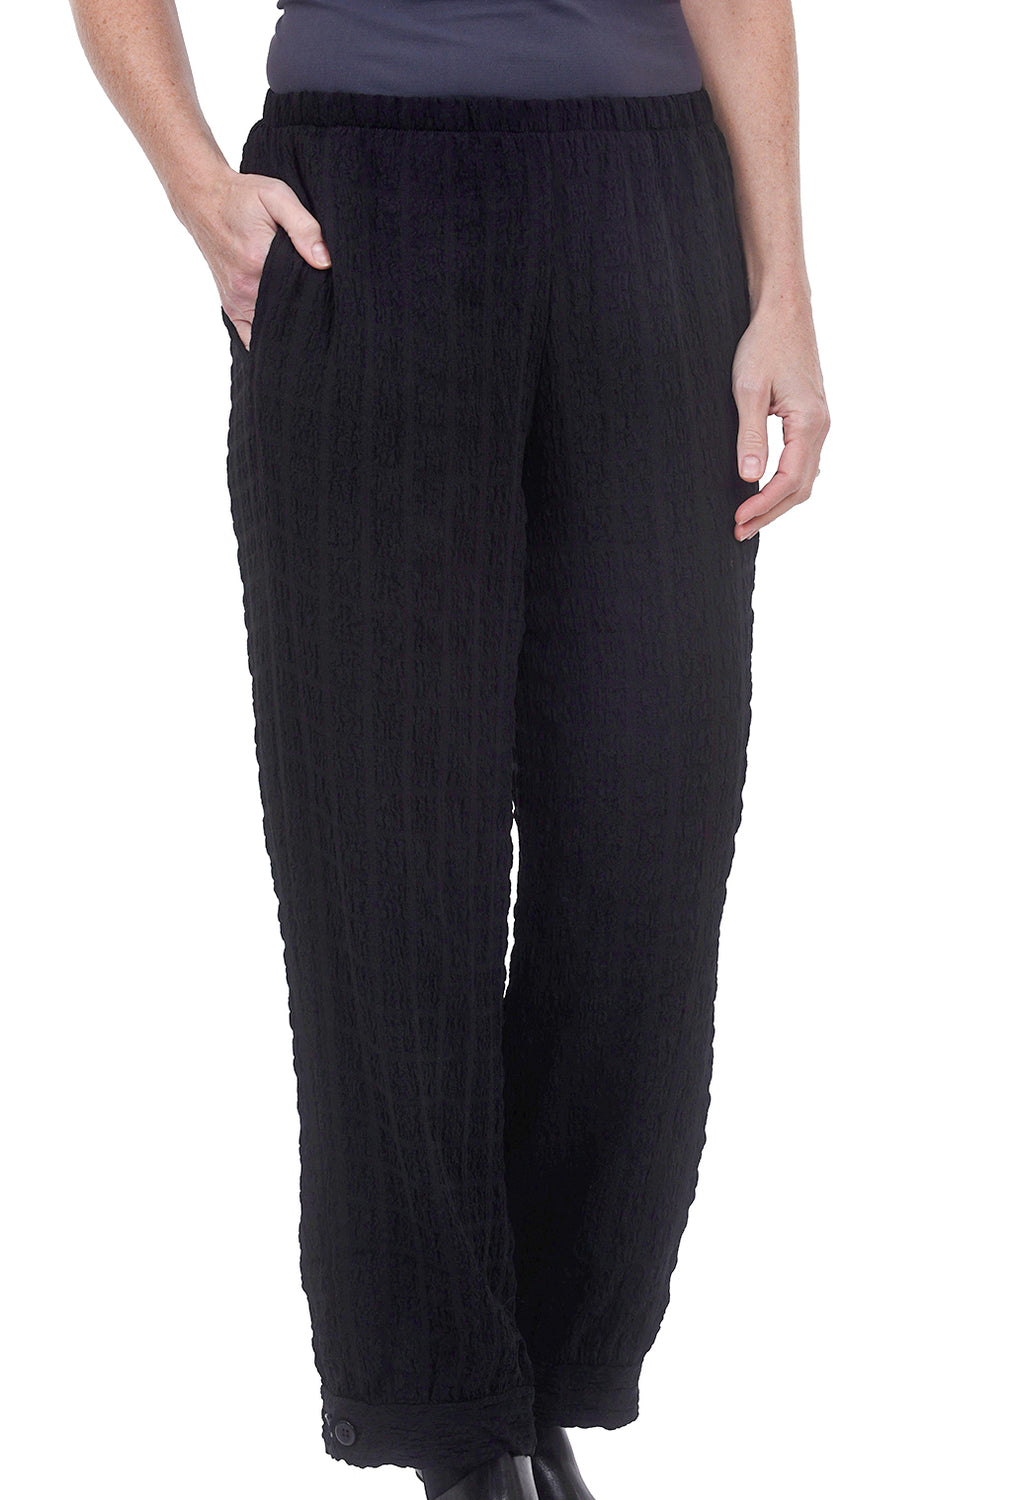 Jason by Comfy USA Terra Pants, Black